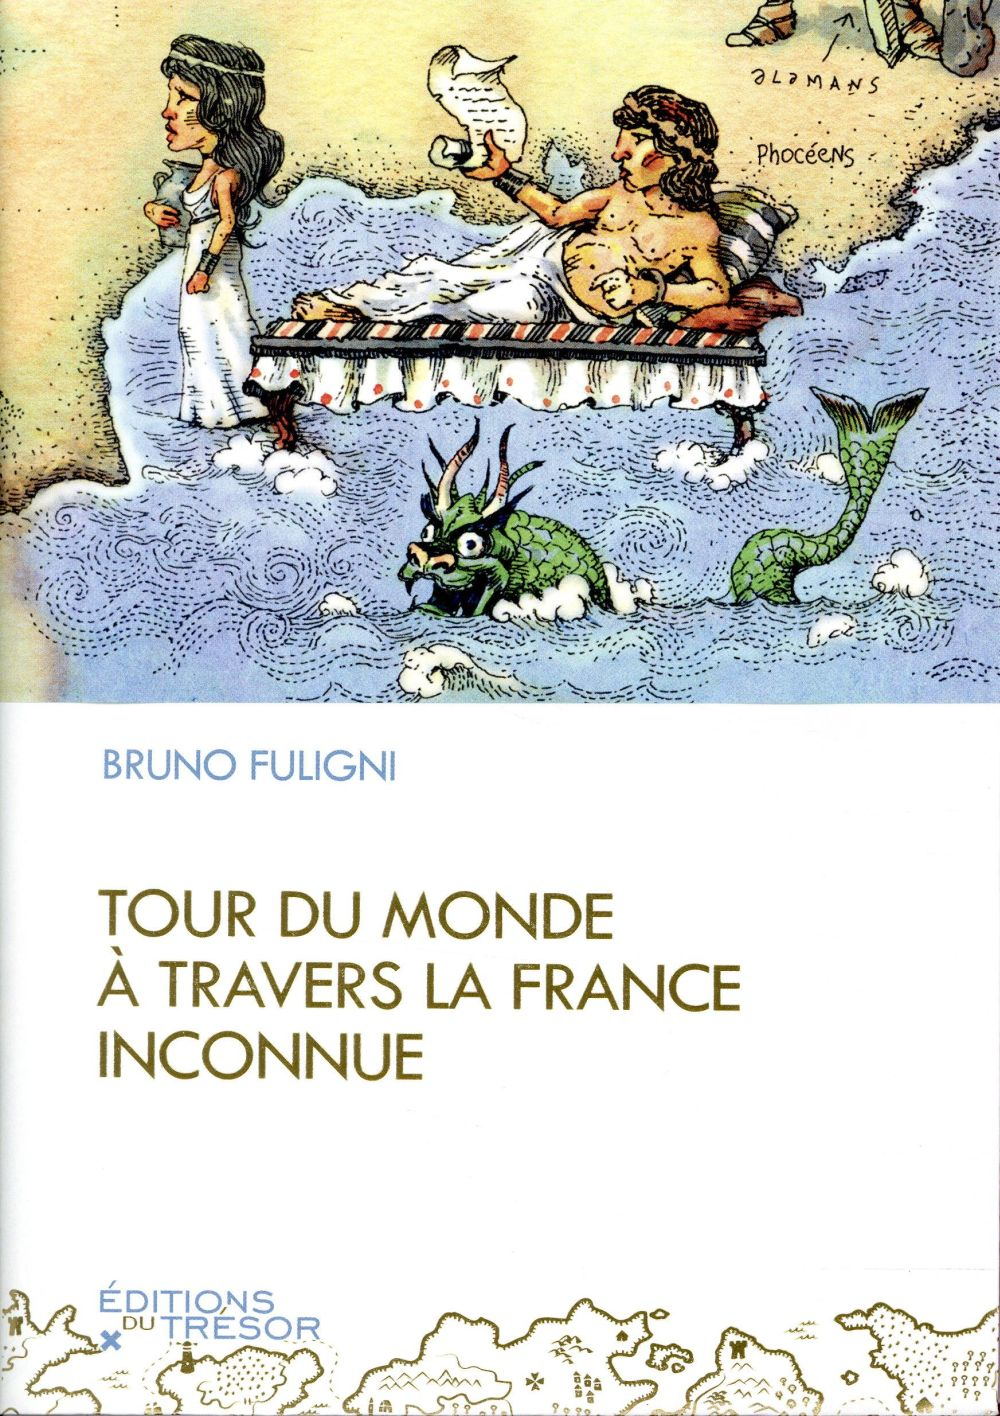 Tour du monde à travers la France inconnue